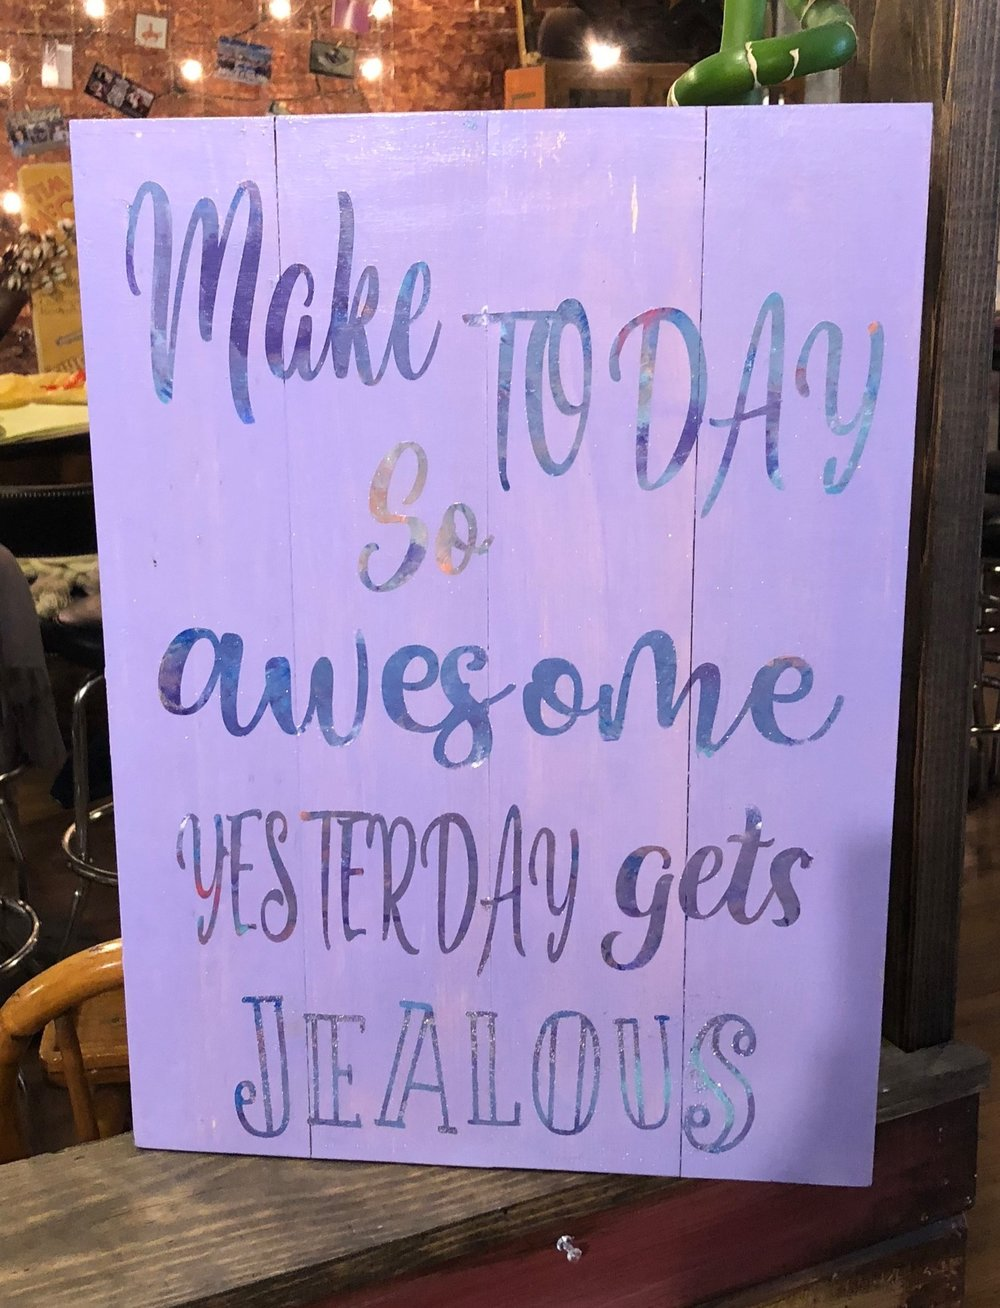 Make today so Awesome yesterday gets..